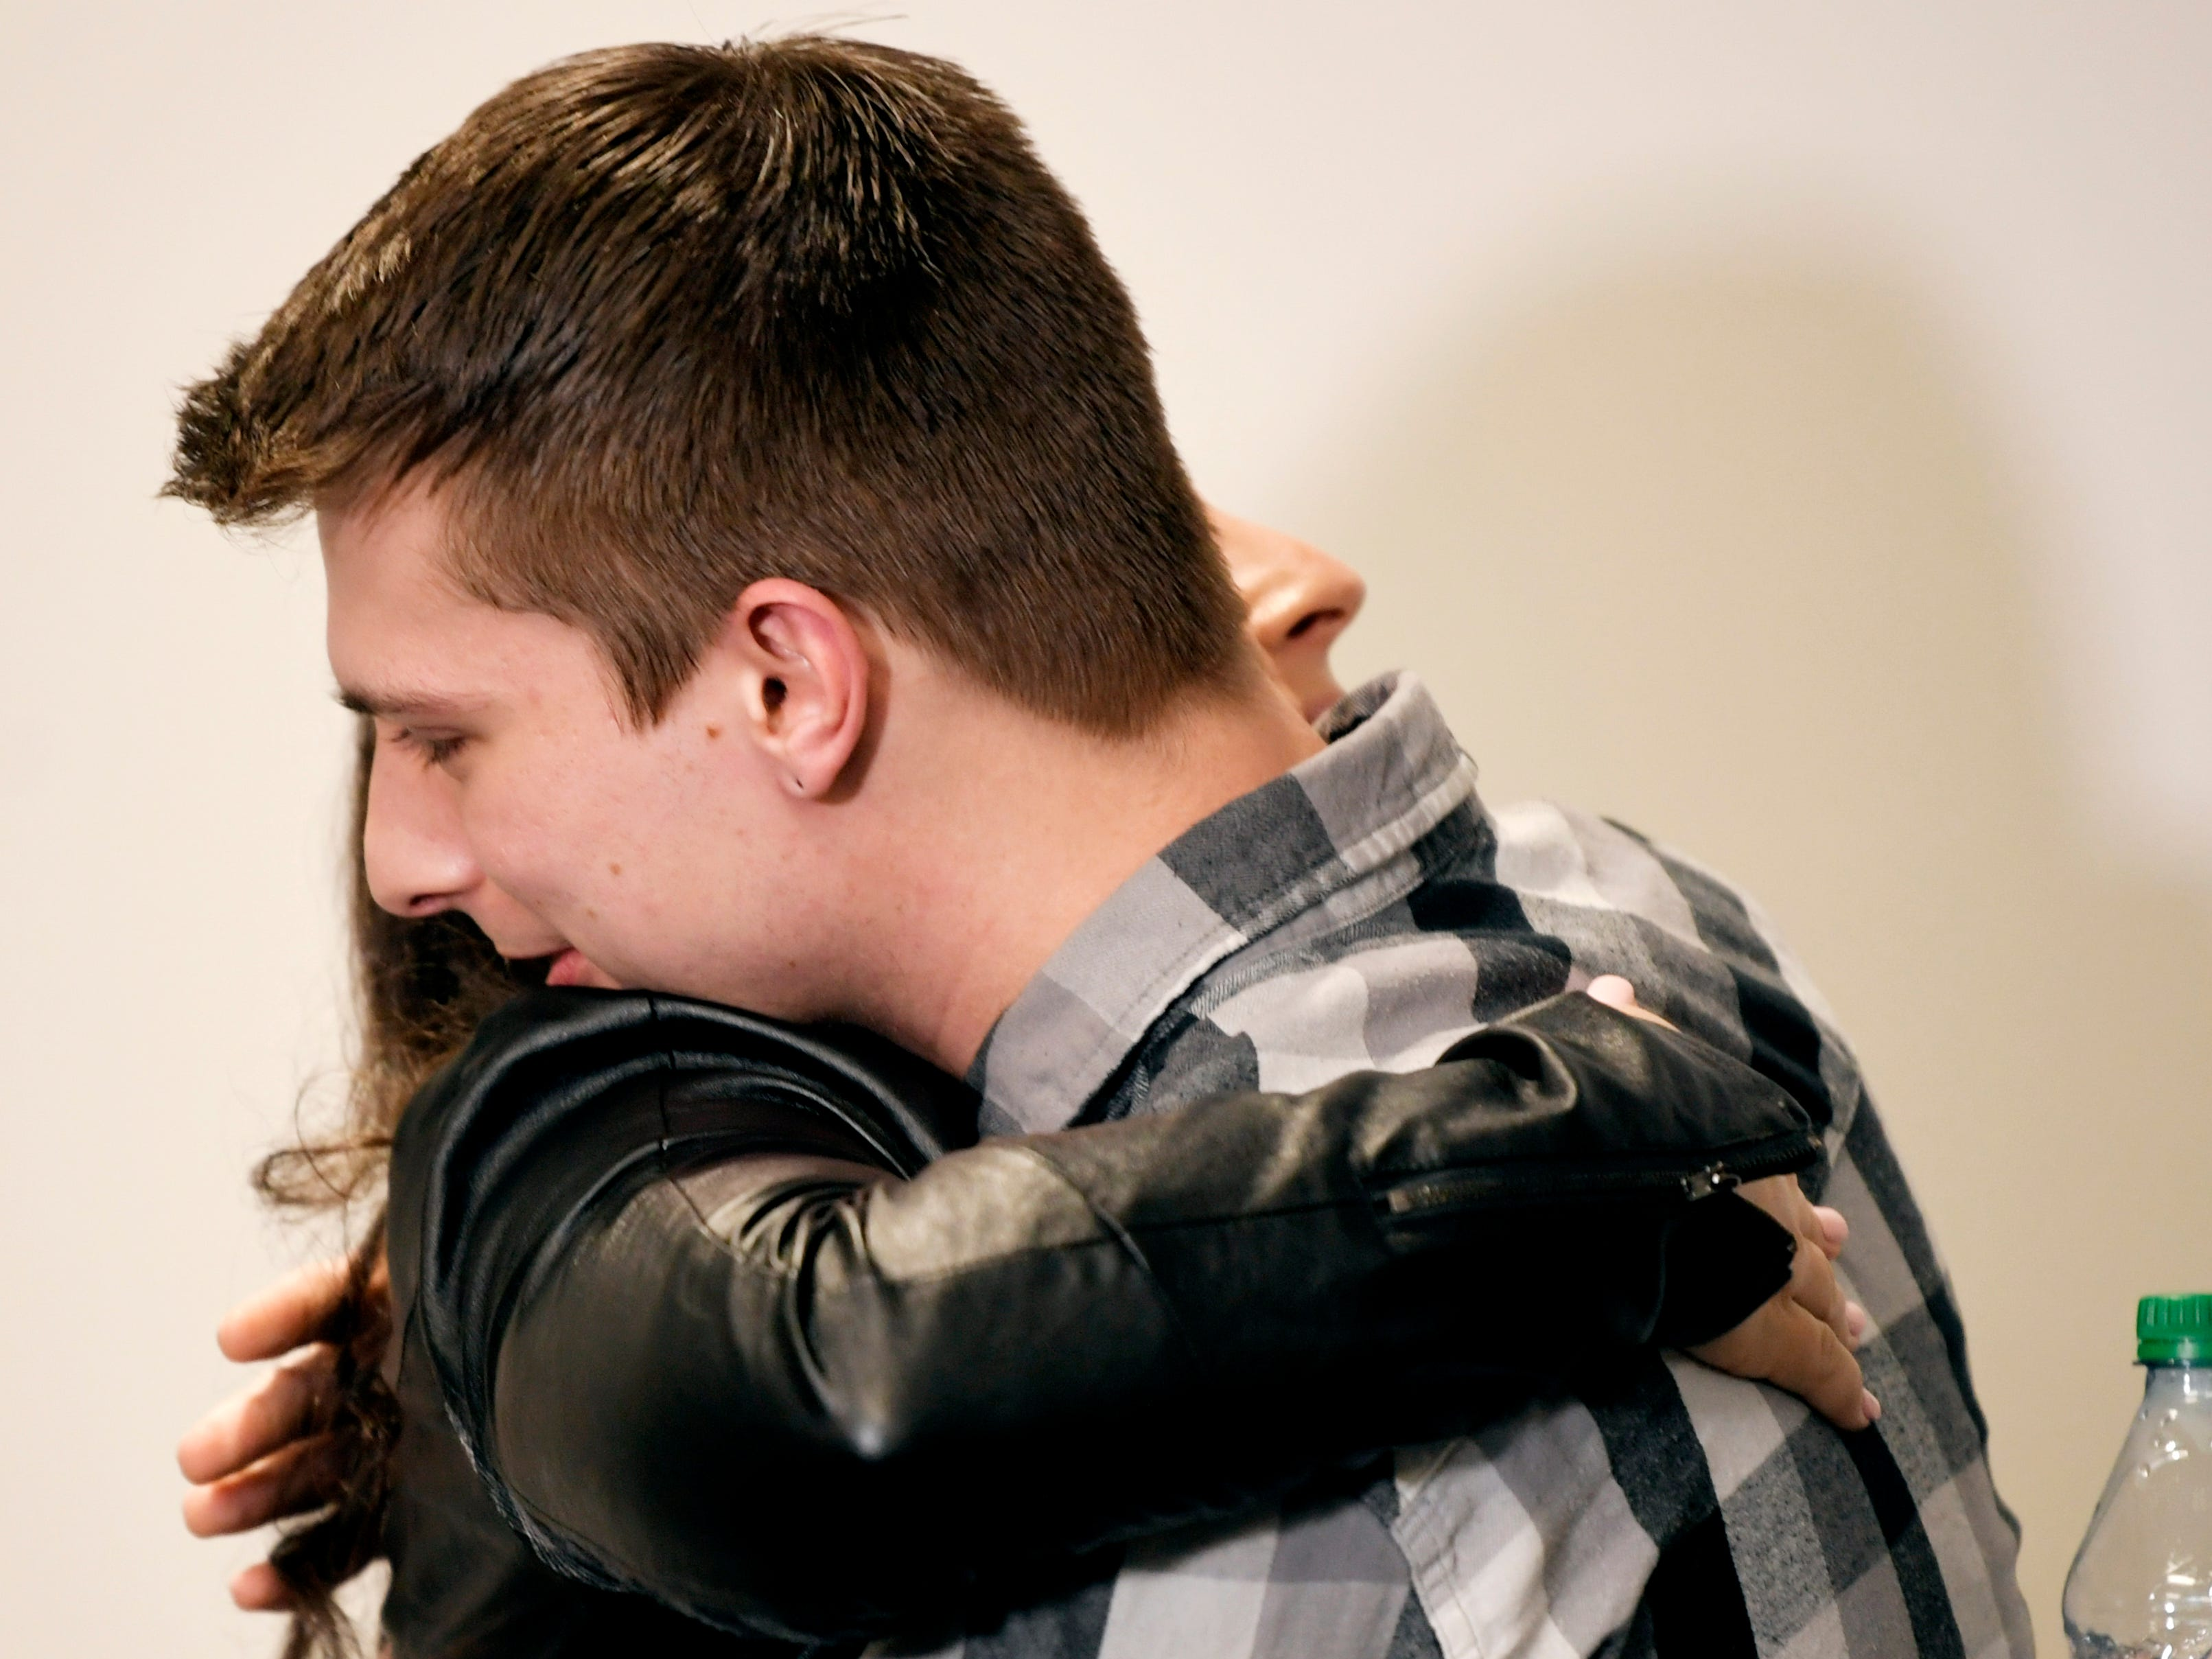 Carverton publicist Jen Appel hugs Michael Curry after a press conference about band member Kyle Yorlets at Belmont University on Monday, Feb. 11, 2019. Police have charged five juveniles in the case. A memorial service was scheduled to follow.